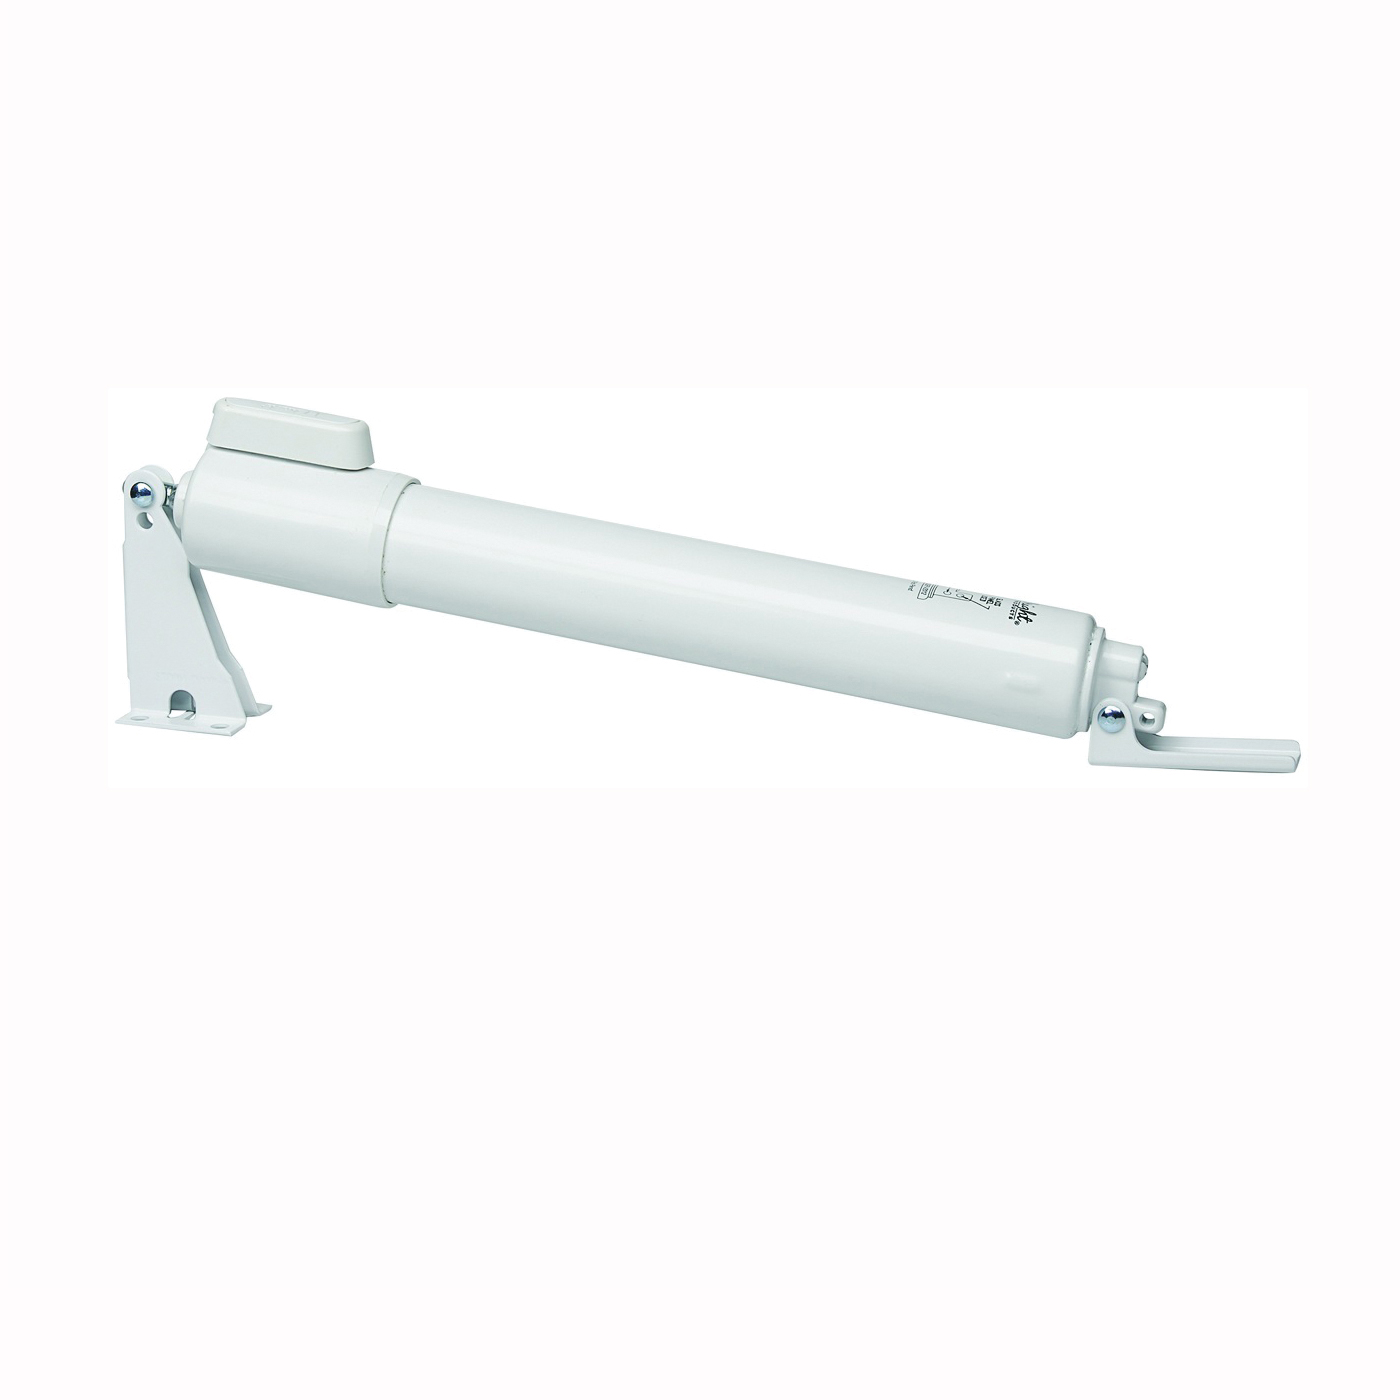 Picture of Wright Products TAP-N-GO V2010WH Pneumatic Door Closer, 90 deg Opening